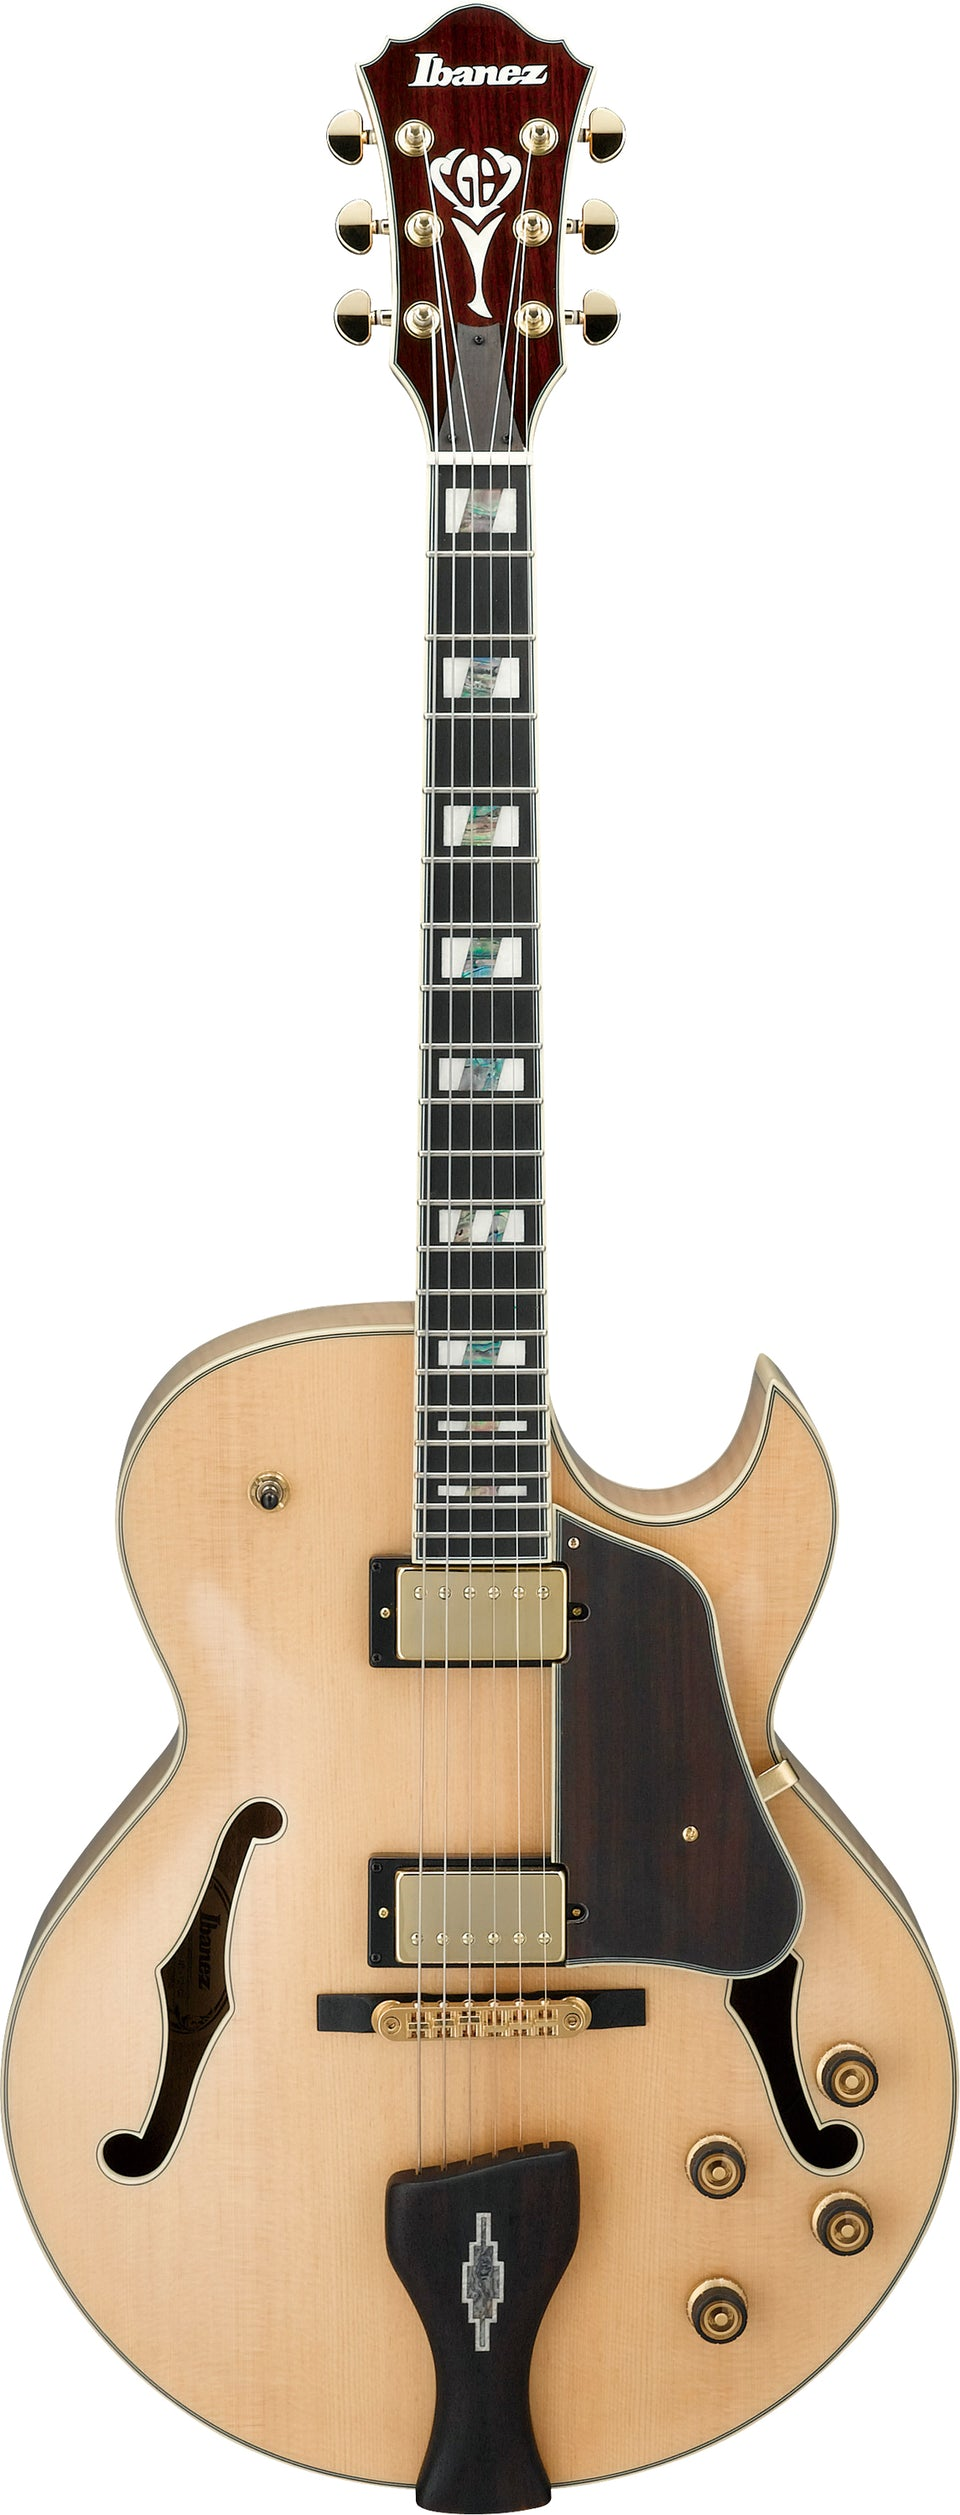 Ibanez LGB30 GB George Benson Series Hollow Body Electric Guitar - Natural